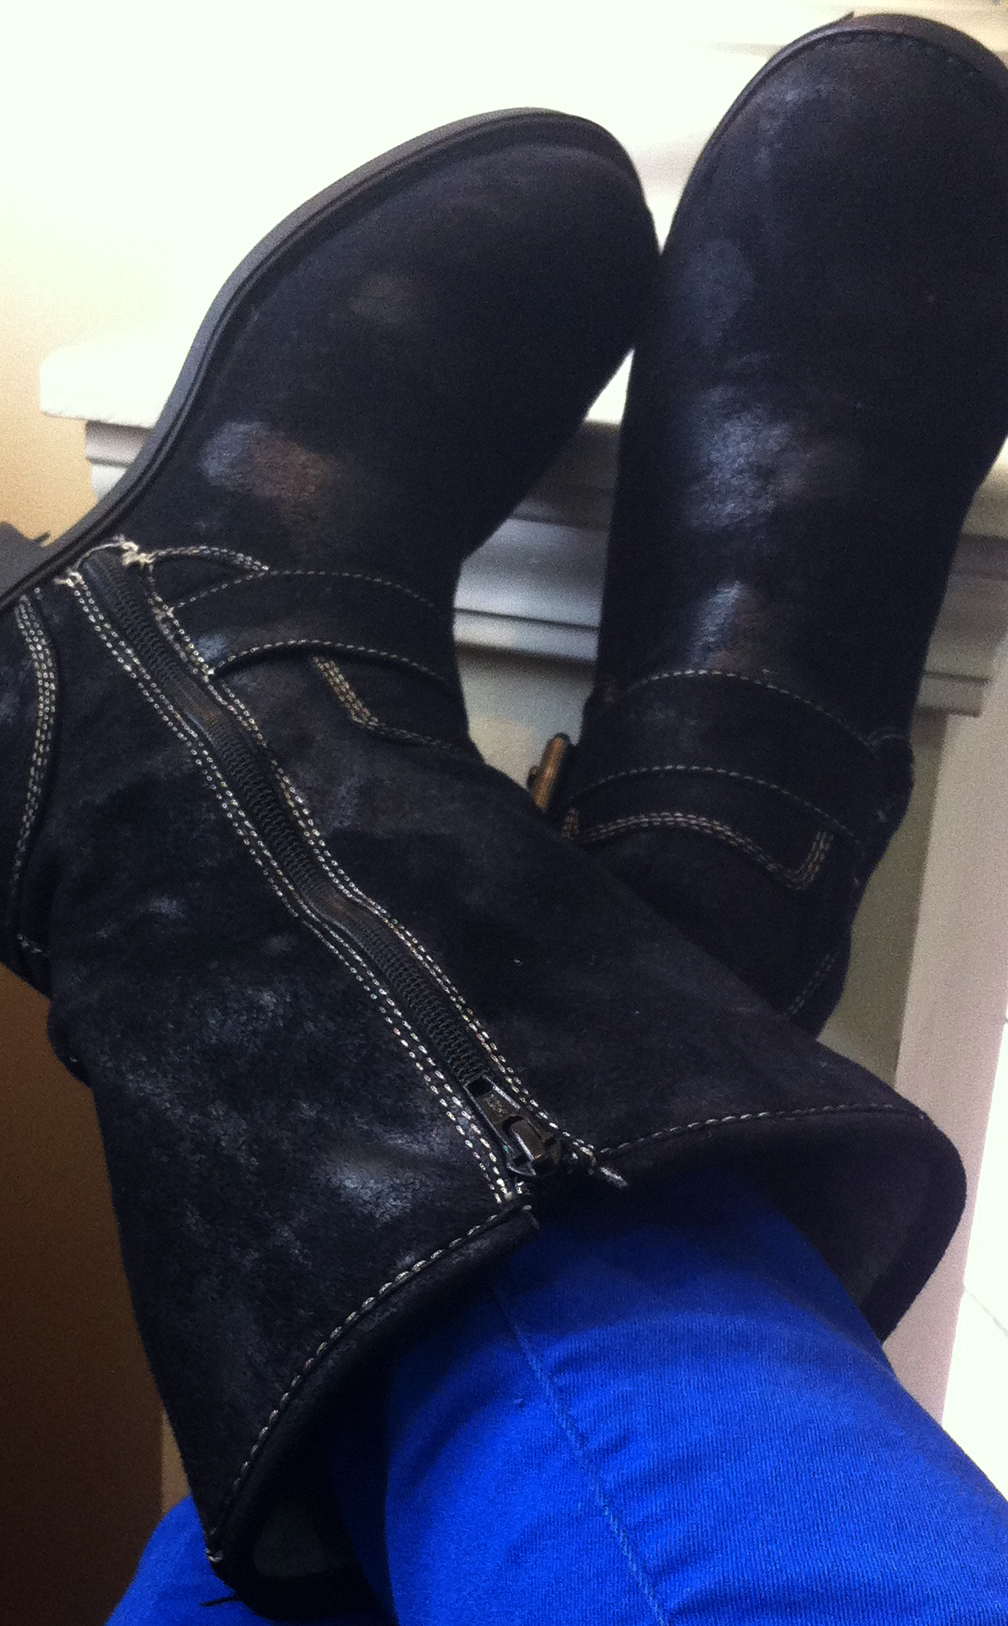 Black faux suede Decree boots beat up battered trusty old